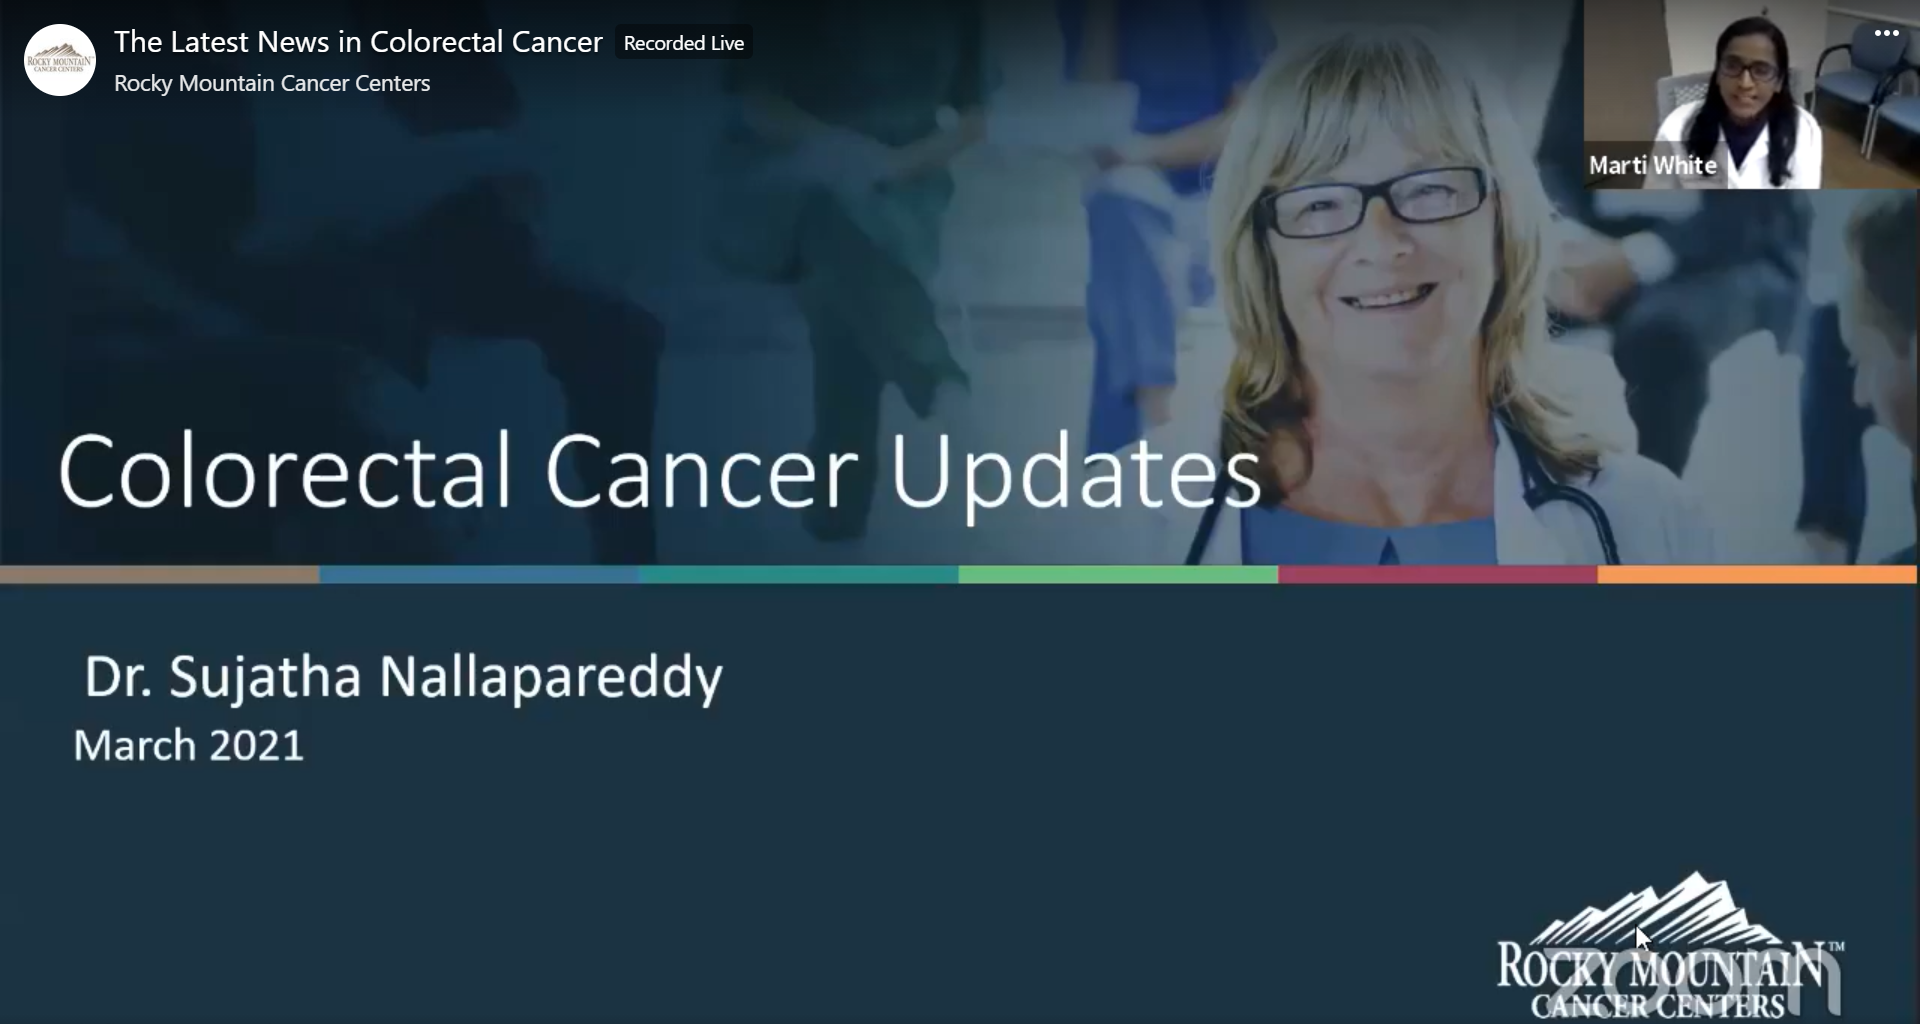 The Latest News in Colorectal Cancer